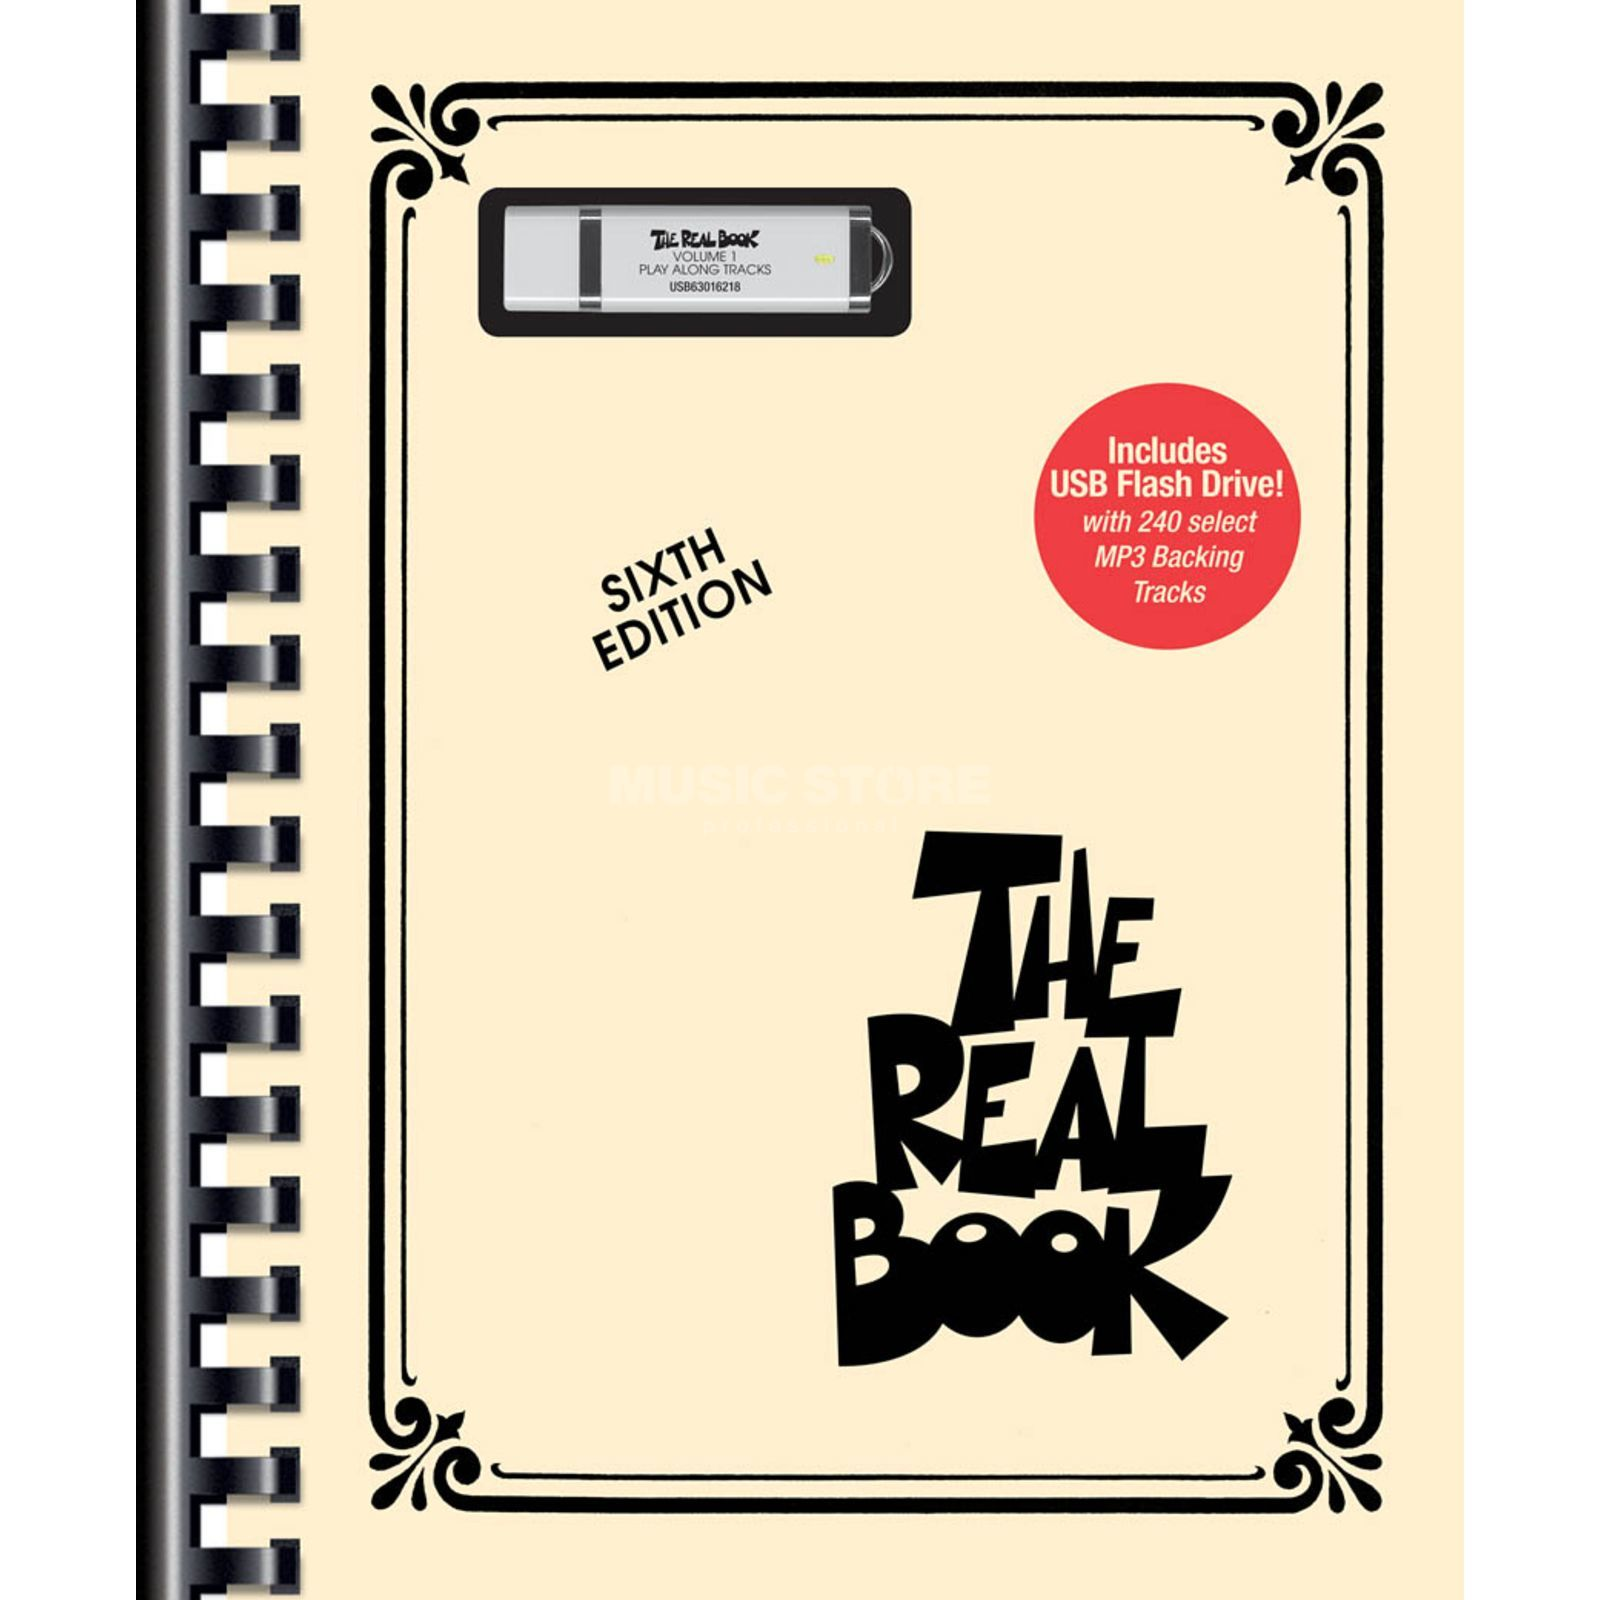 Hal Leonard The Real Book I mit USB-Stick C Instrumente - Sixth Edition Produktbild